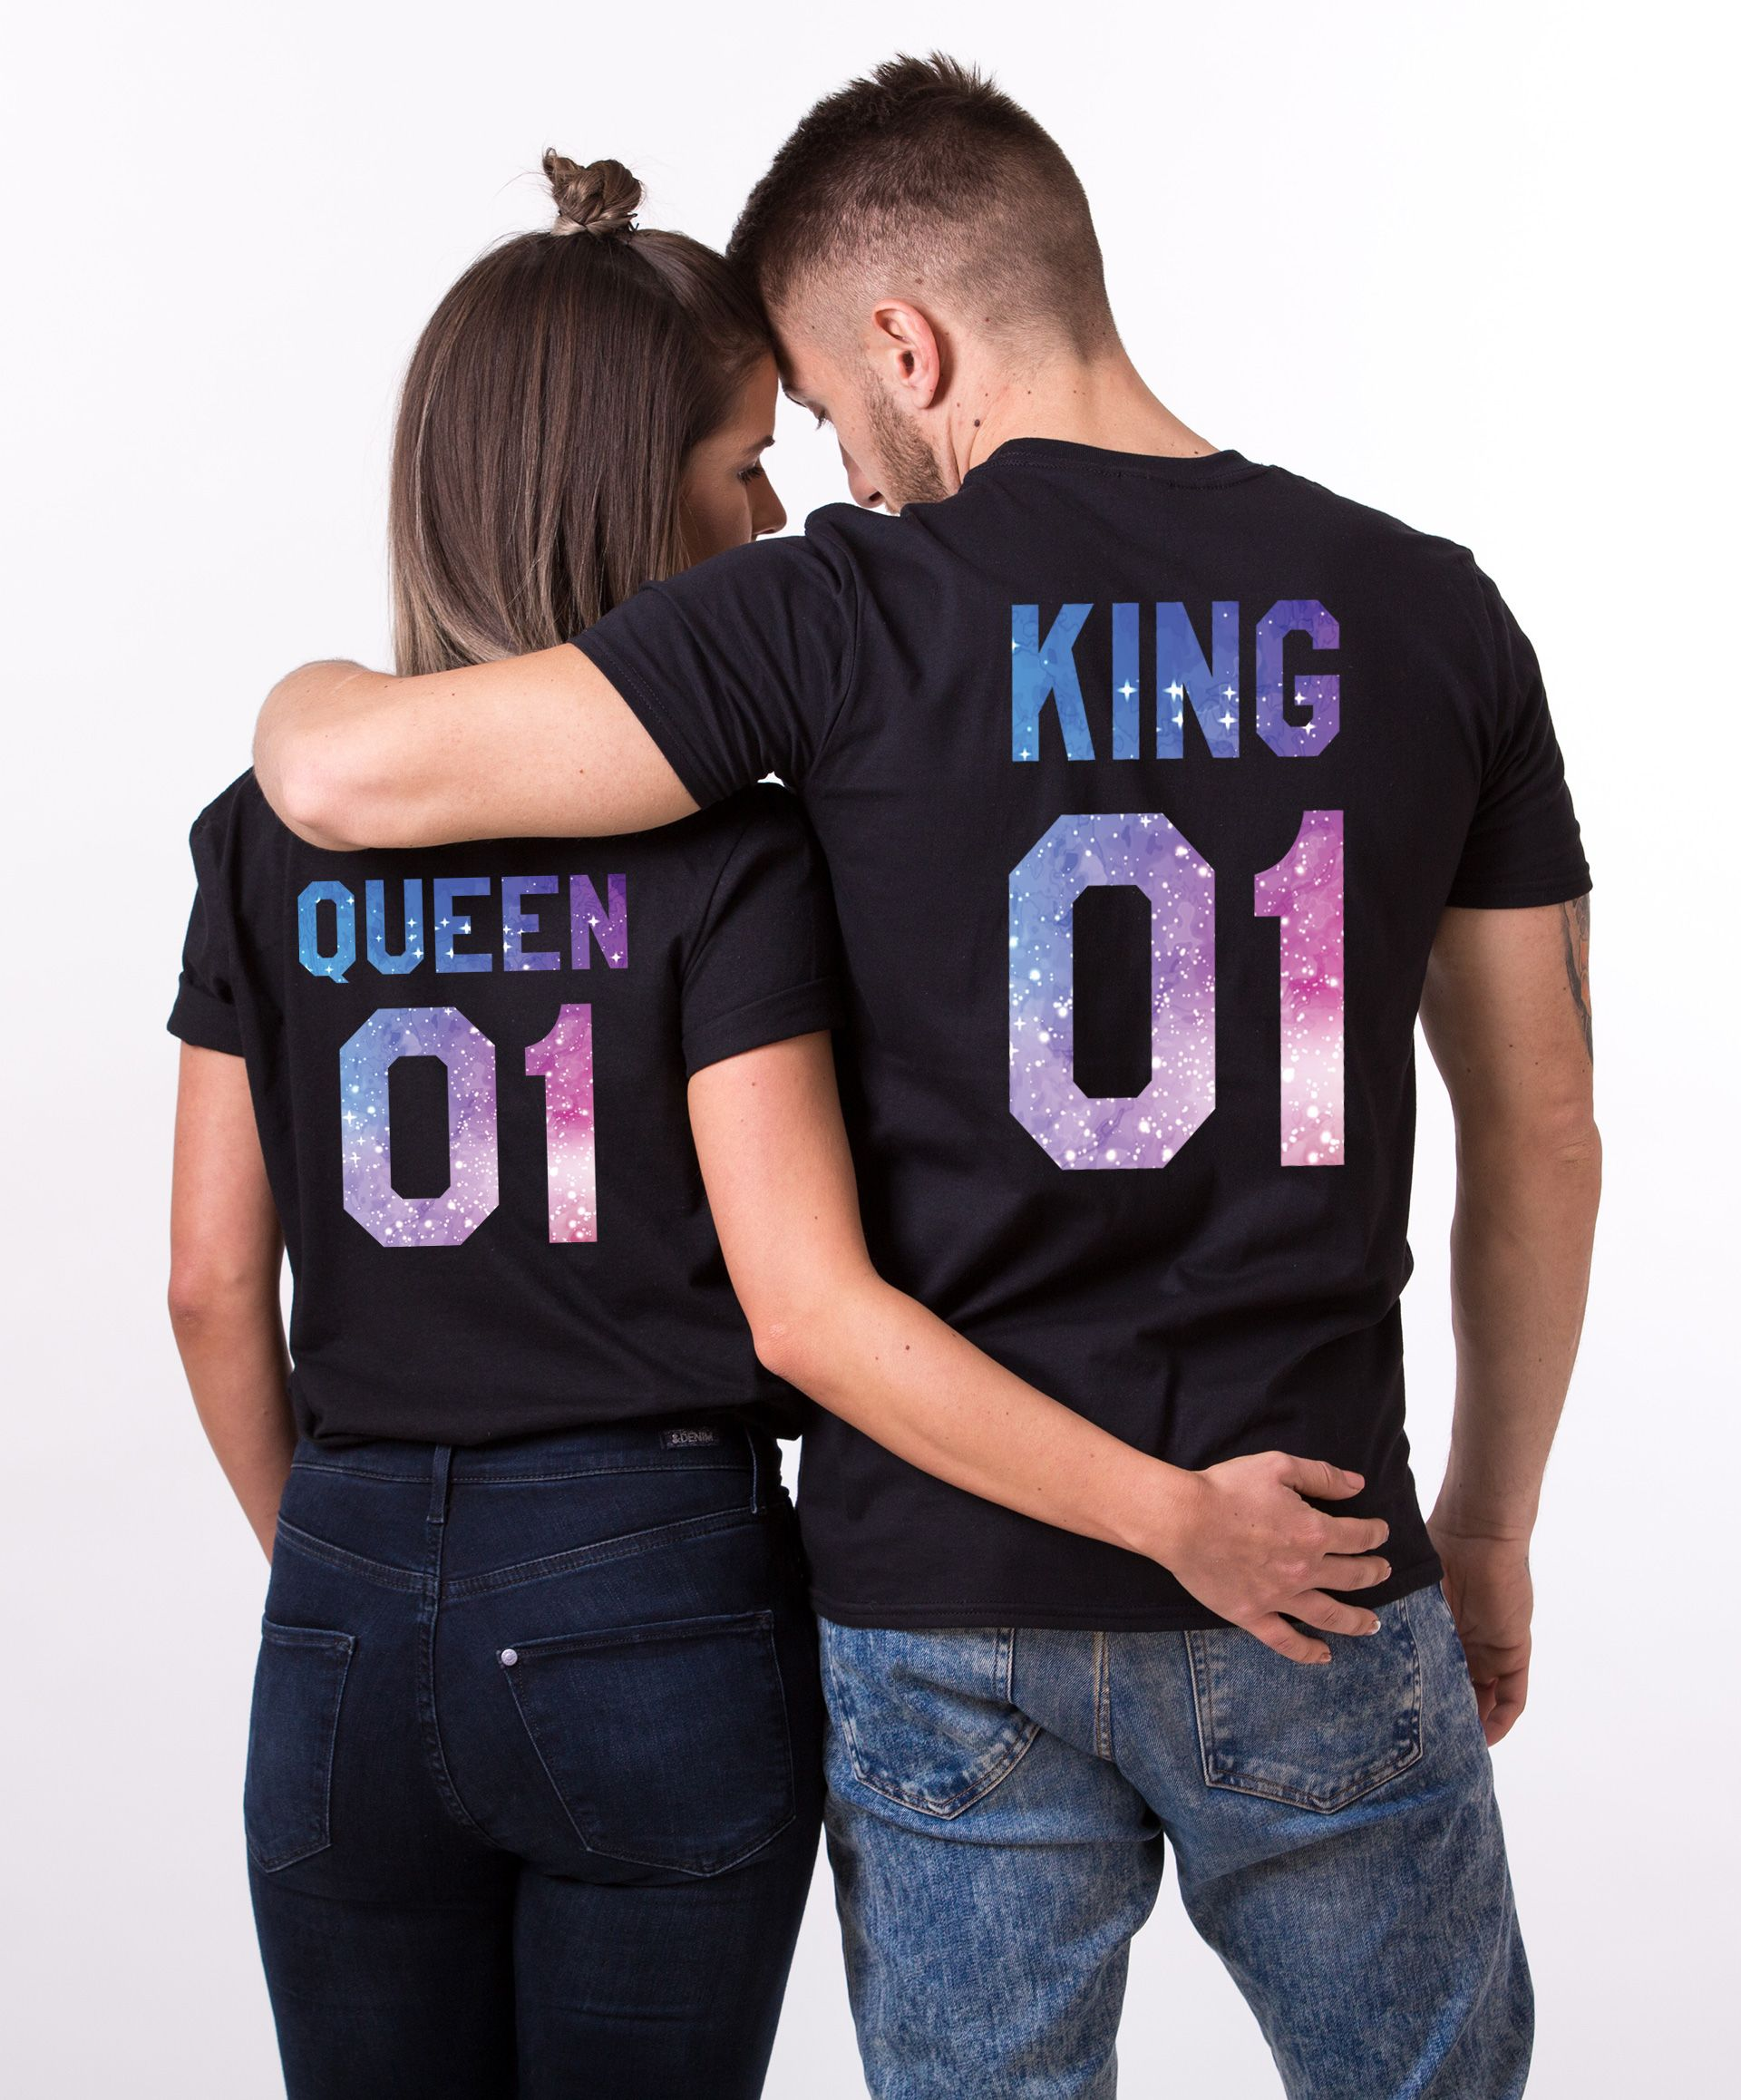 And Kings Queens Top Black